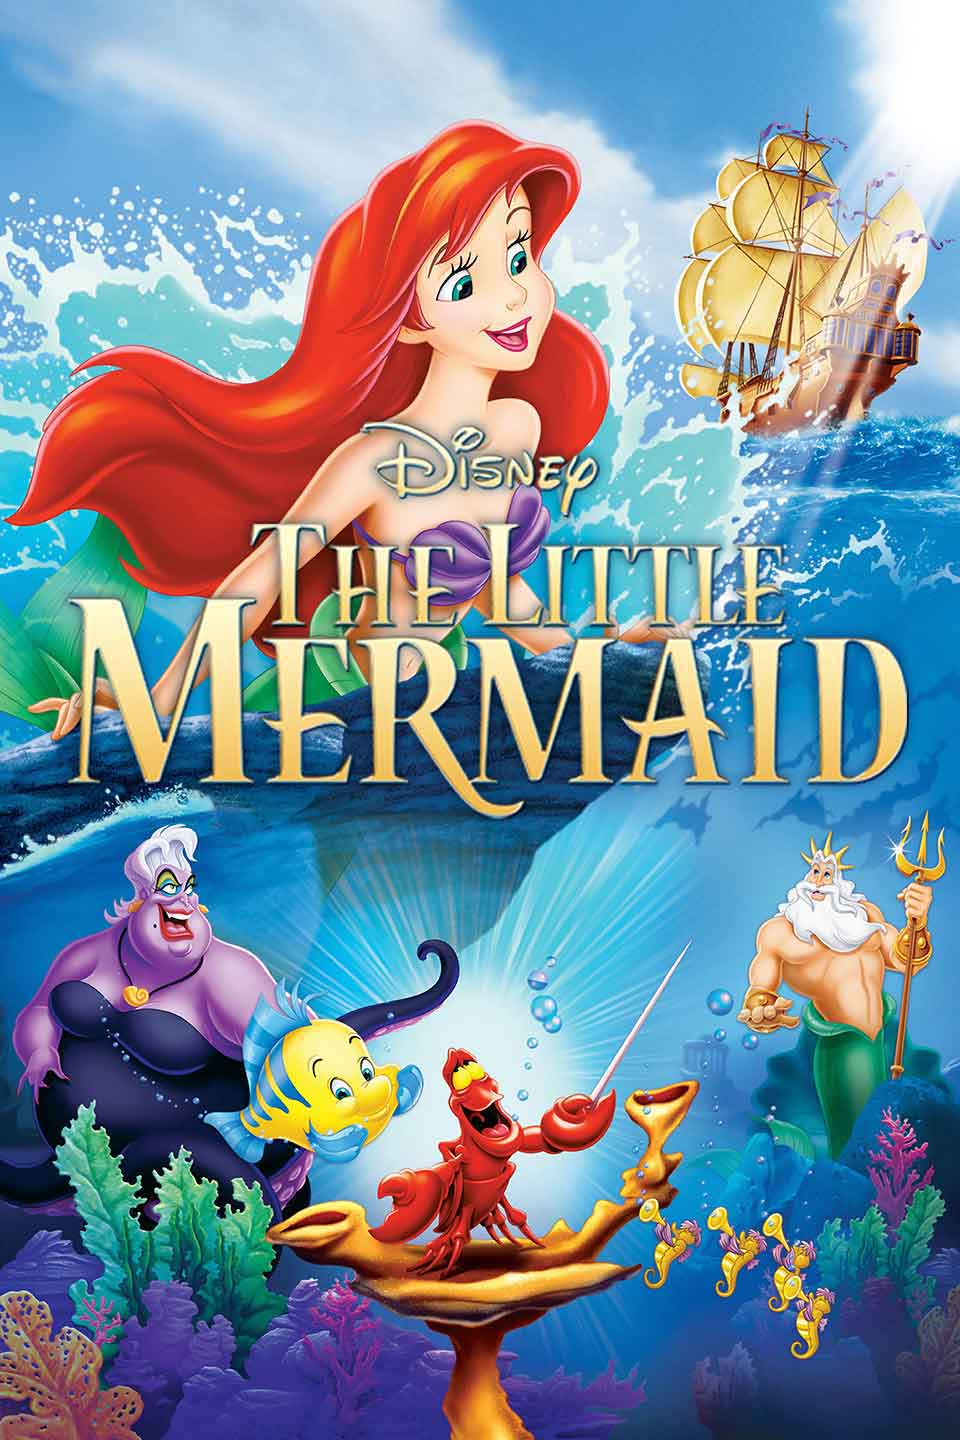 LittleMermaid960x1440.jpg